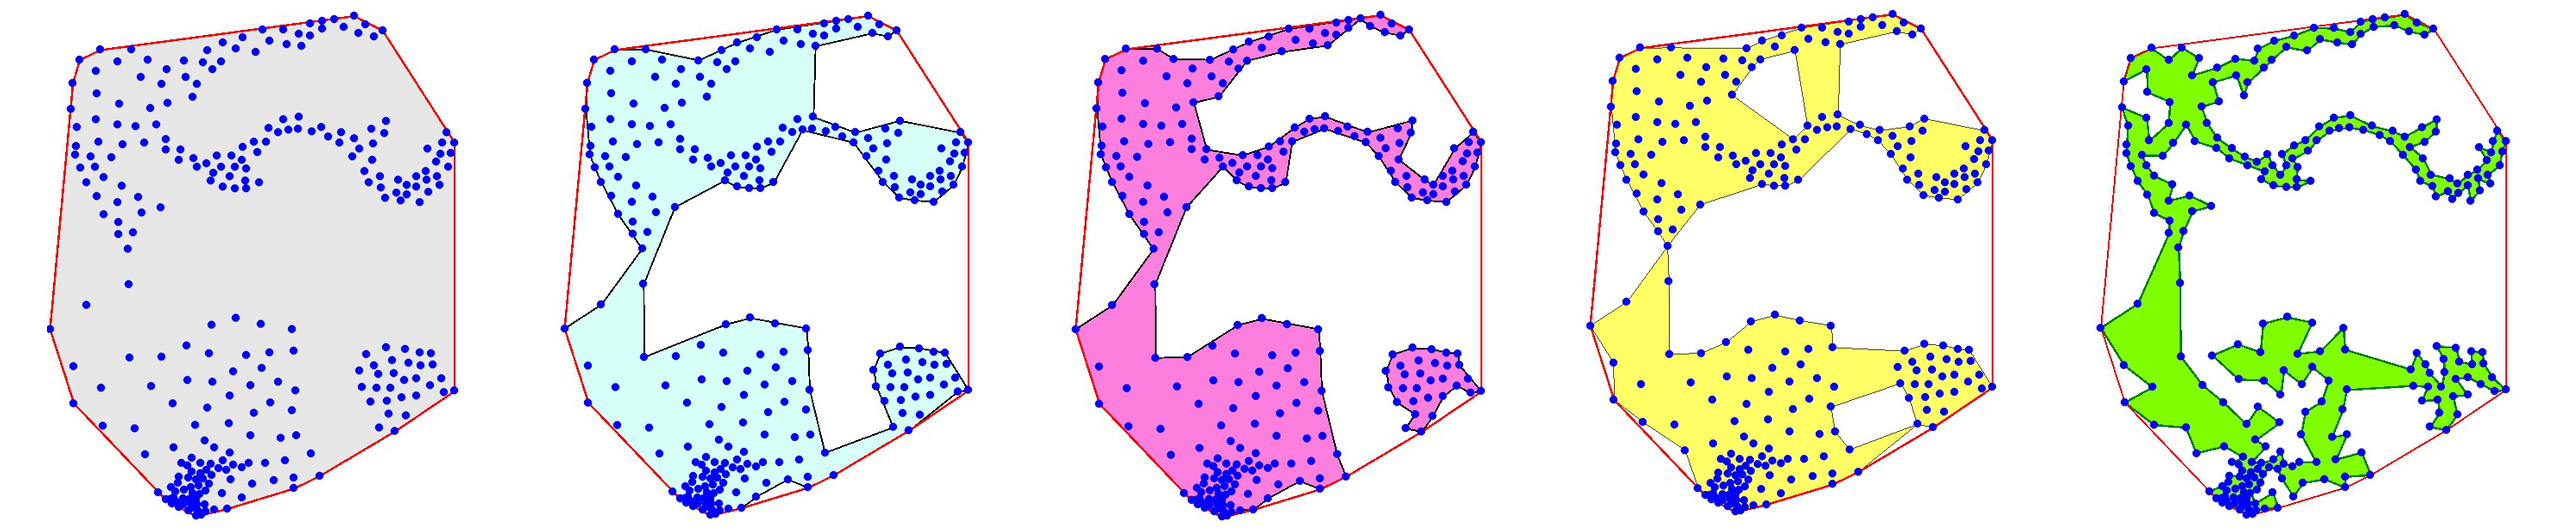 Python & OpenGL for Scientific Visualization